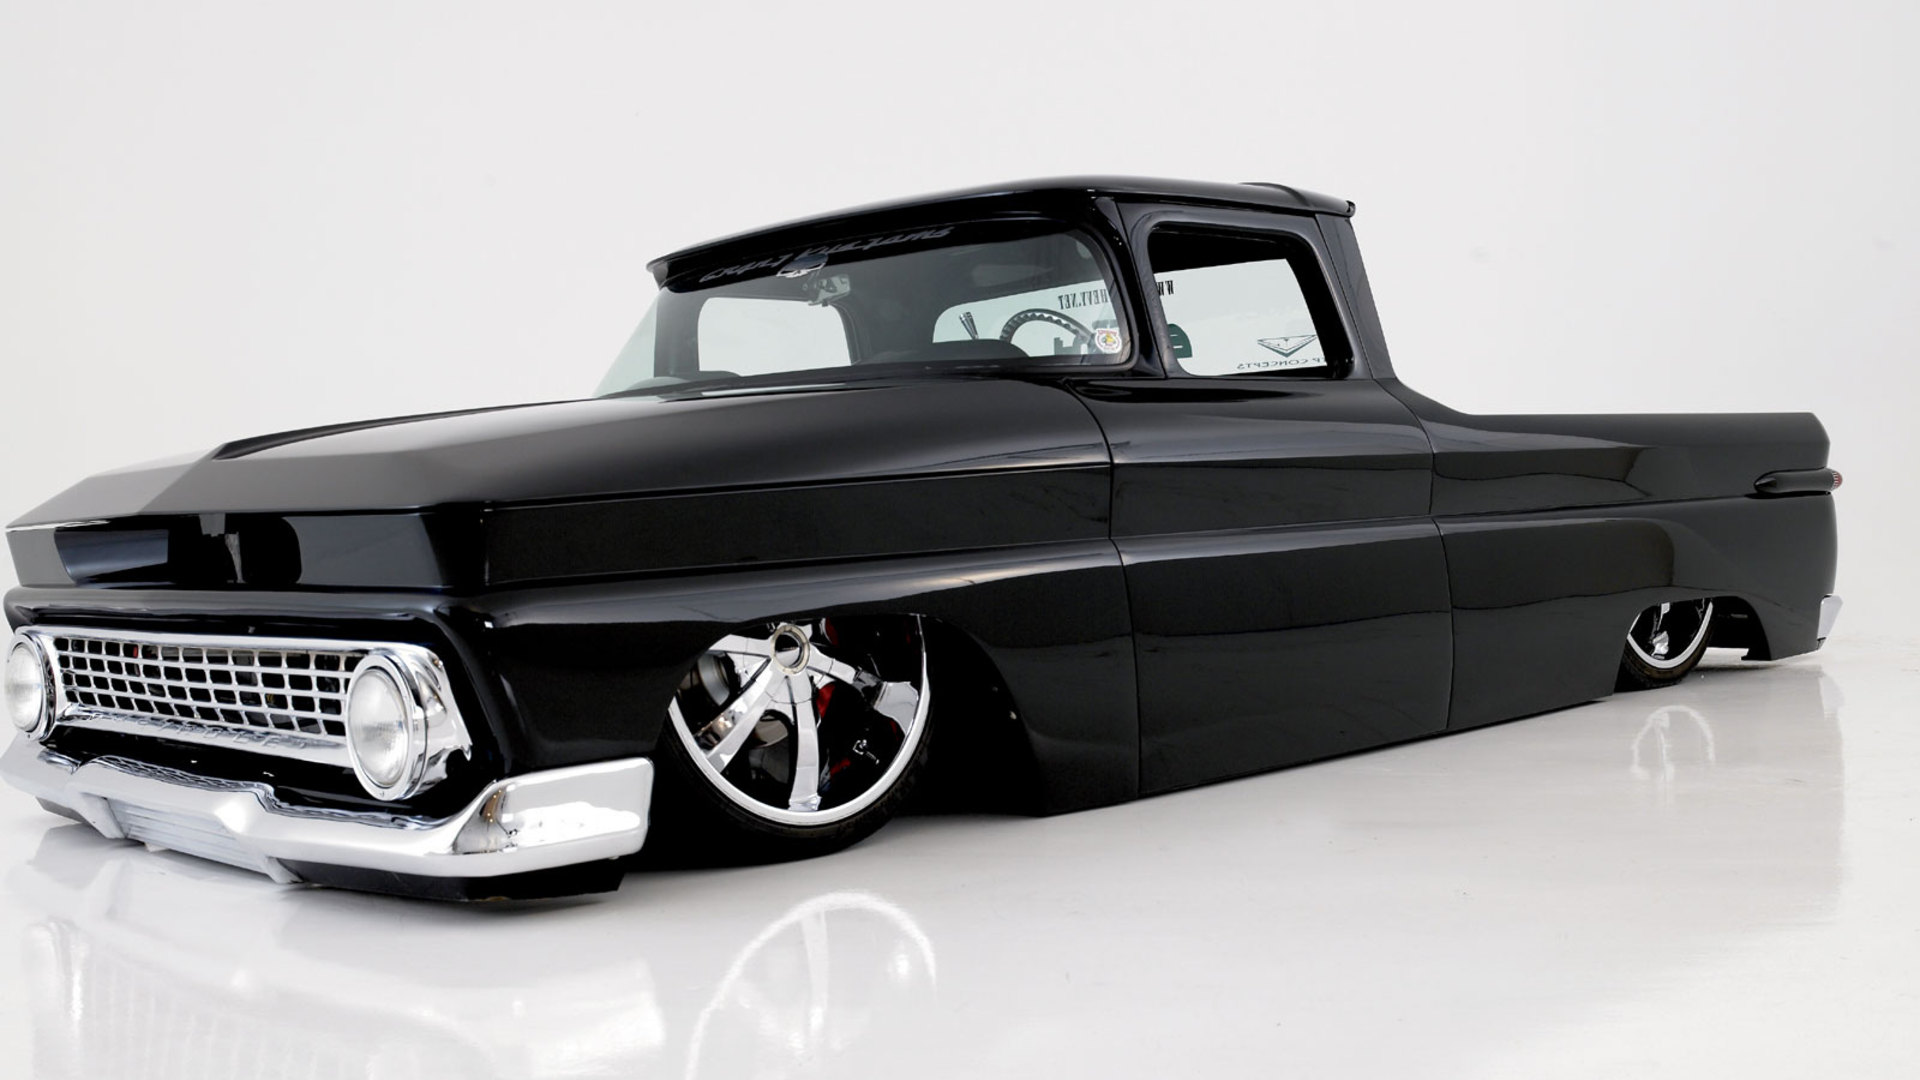 lowrider computer wallpapers desktop backgrounds